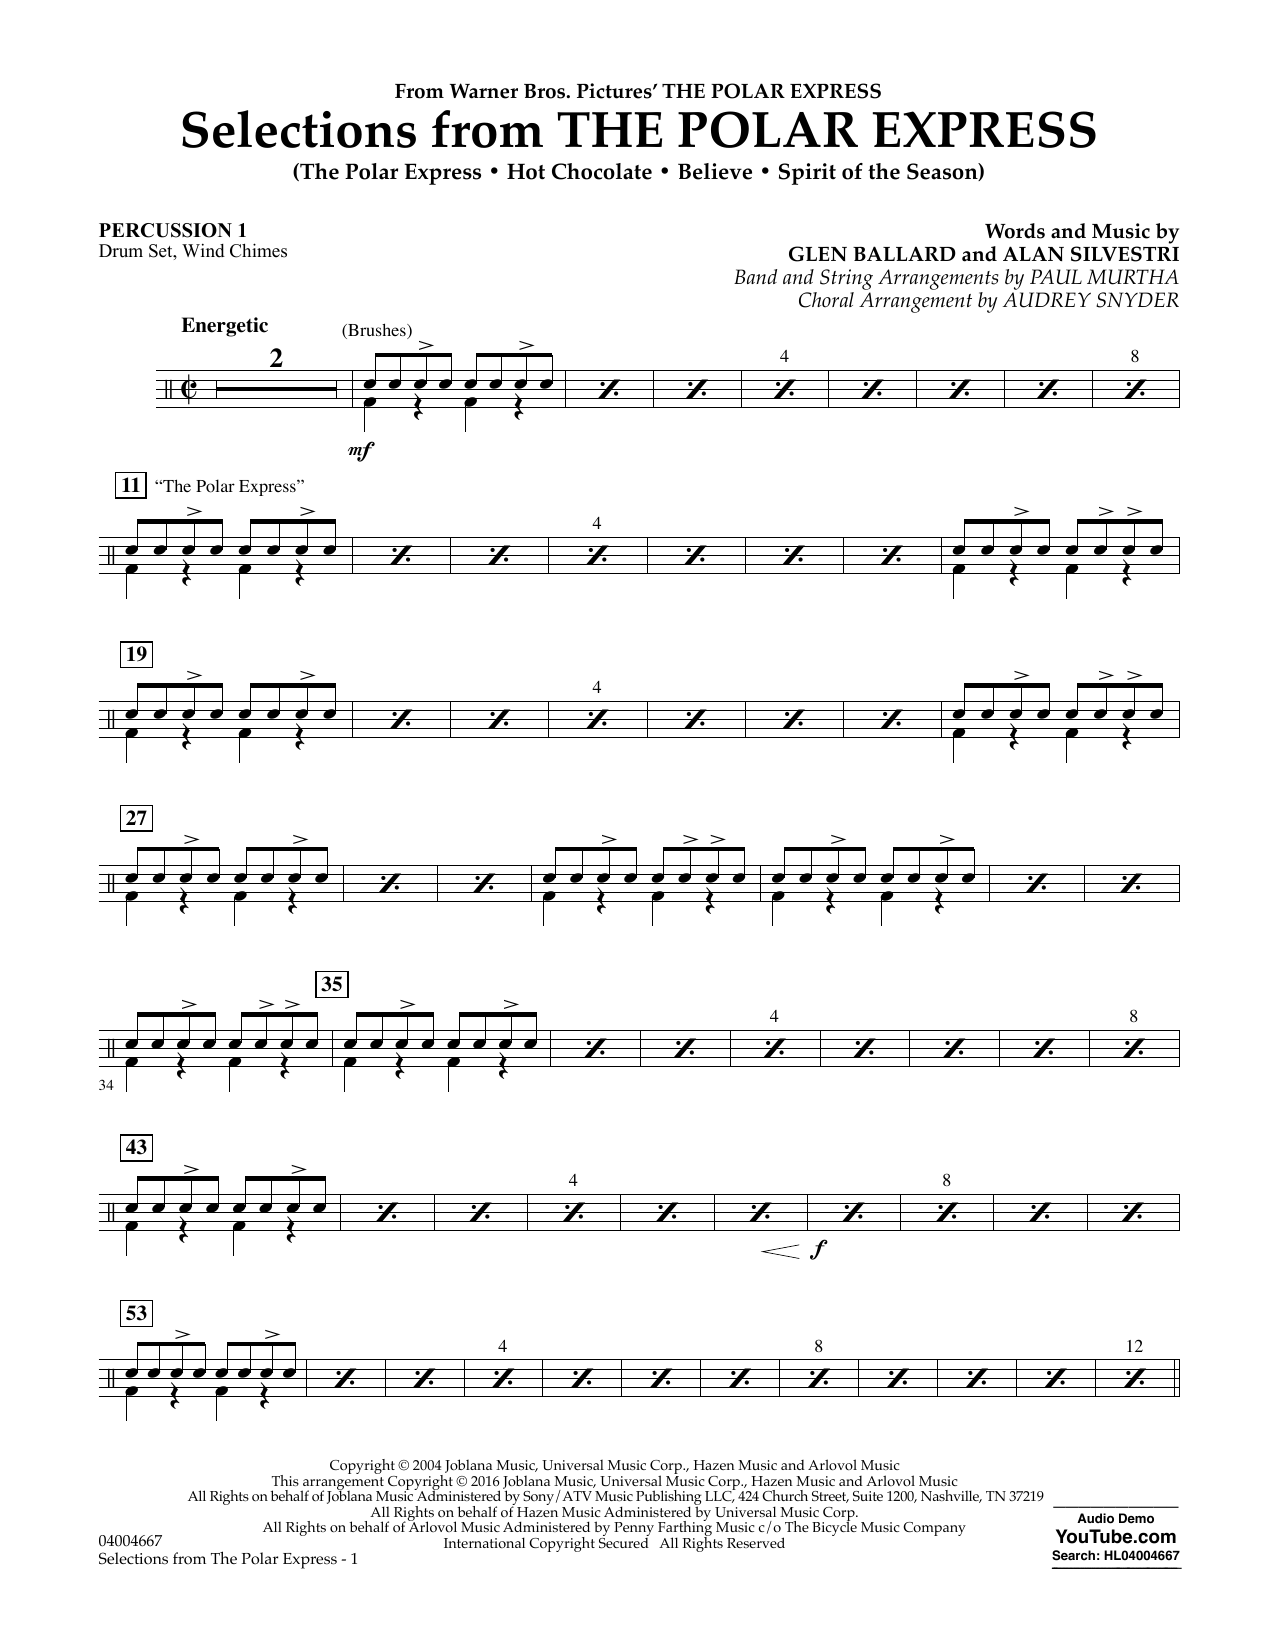 Selections from The Polar Express - Percussion 1 (Concert Band)